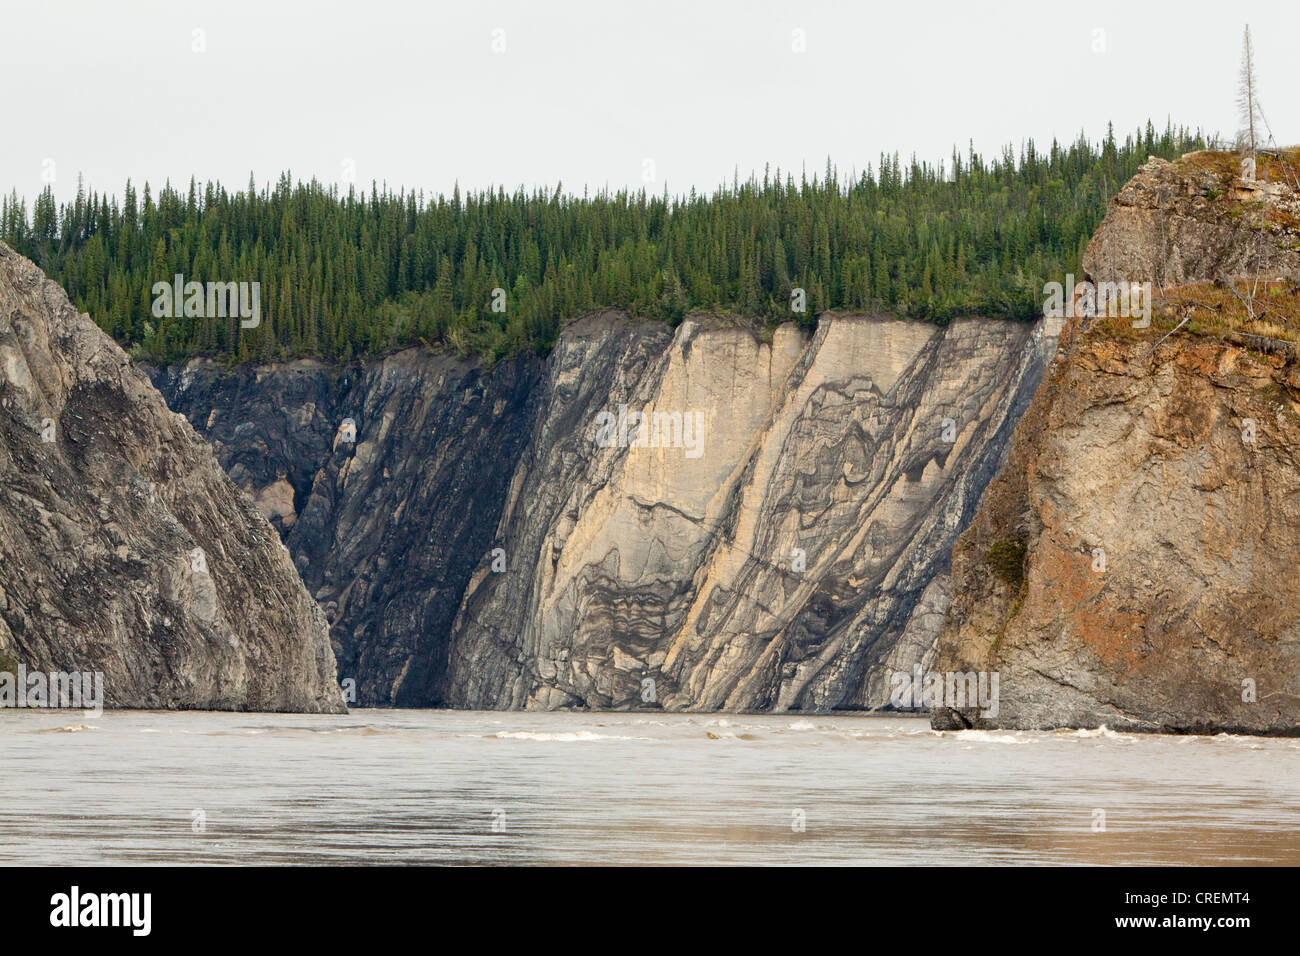 Spiral rock structures and rapids of Peel River Canyon, Peel River, Peel Watershed, Yukon Territory, Canada Stock Photo